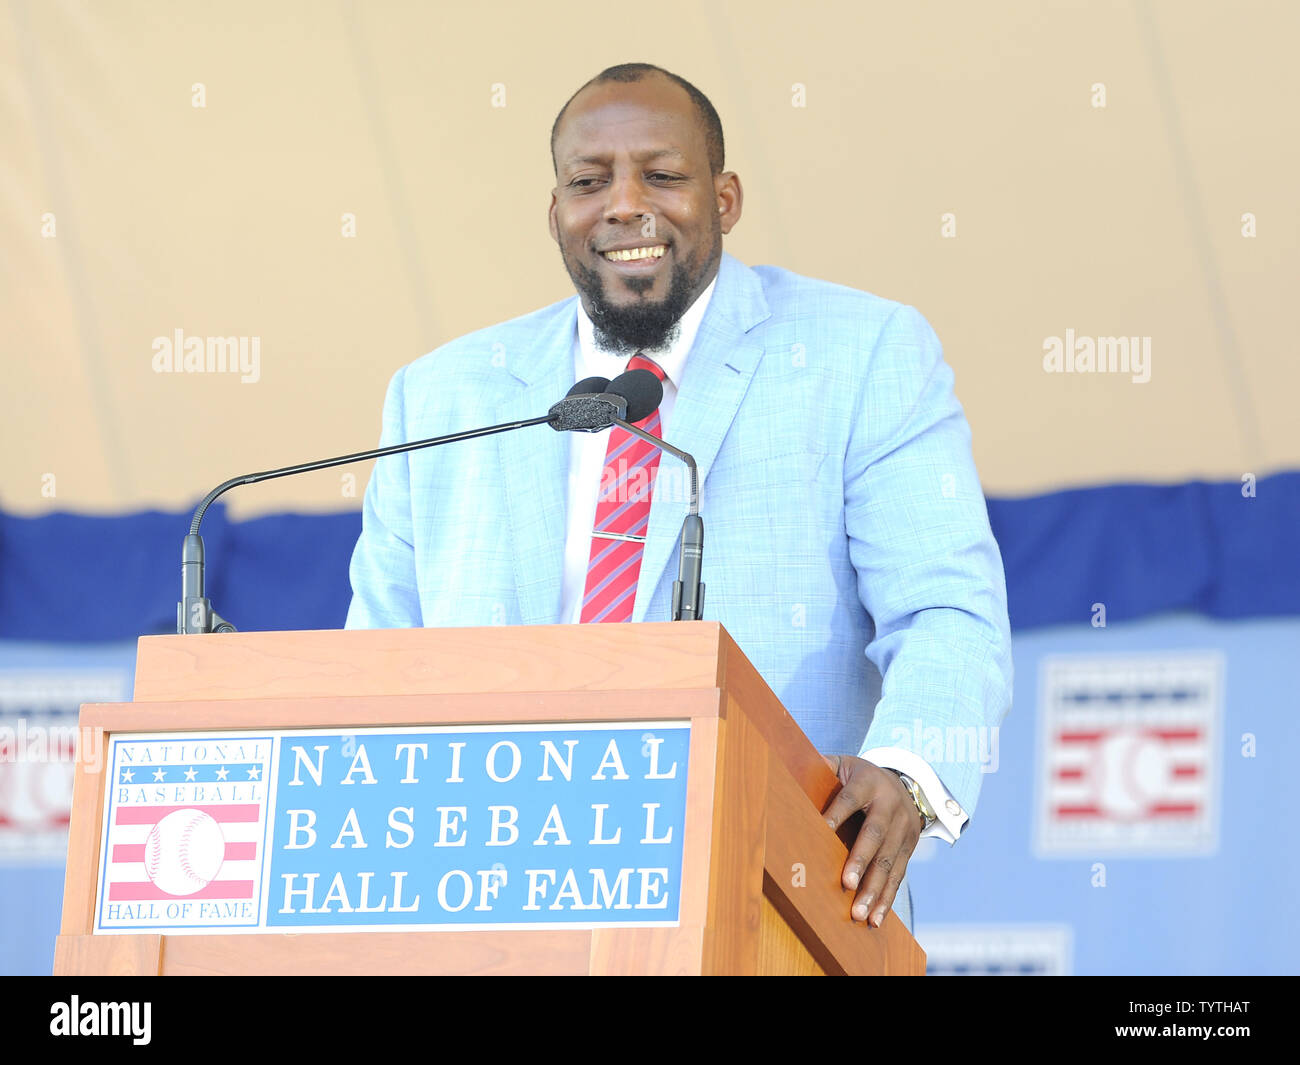 Vladmir Guerrero delivers his  Baseball Hall of Fame induction speech at the Clark Sports Center in Cooperstown, NY on July 29, 2018.  A record 60 Hall of Famers are scheduled to be in Central New York to honor Vladimir Guerrero, Trevor Hoffman, Chipper Jones, Jack Morris, Jim Thome and Alan Trammell at the National Baseball Hall of Fame and Museum during Hall of Fame Weekend on July 27-30.     Photo by George Napolitano/UPI                                                                                                   . - Stock Image